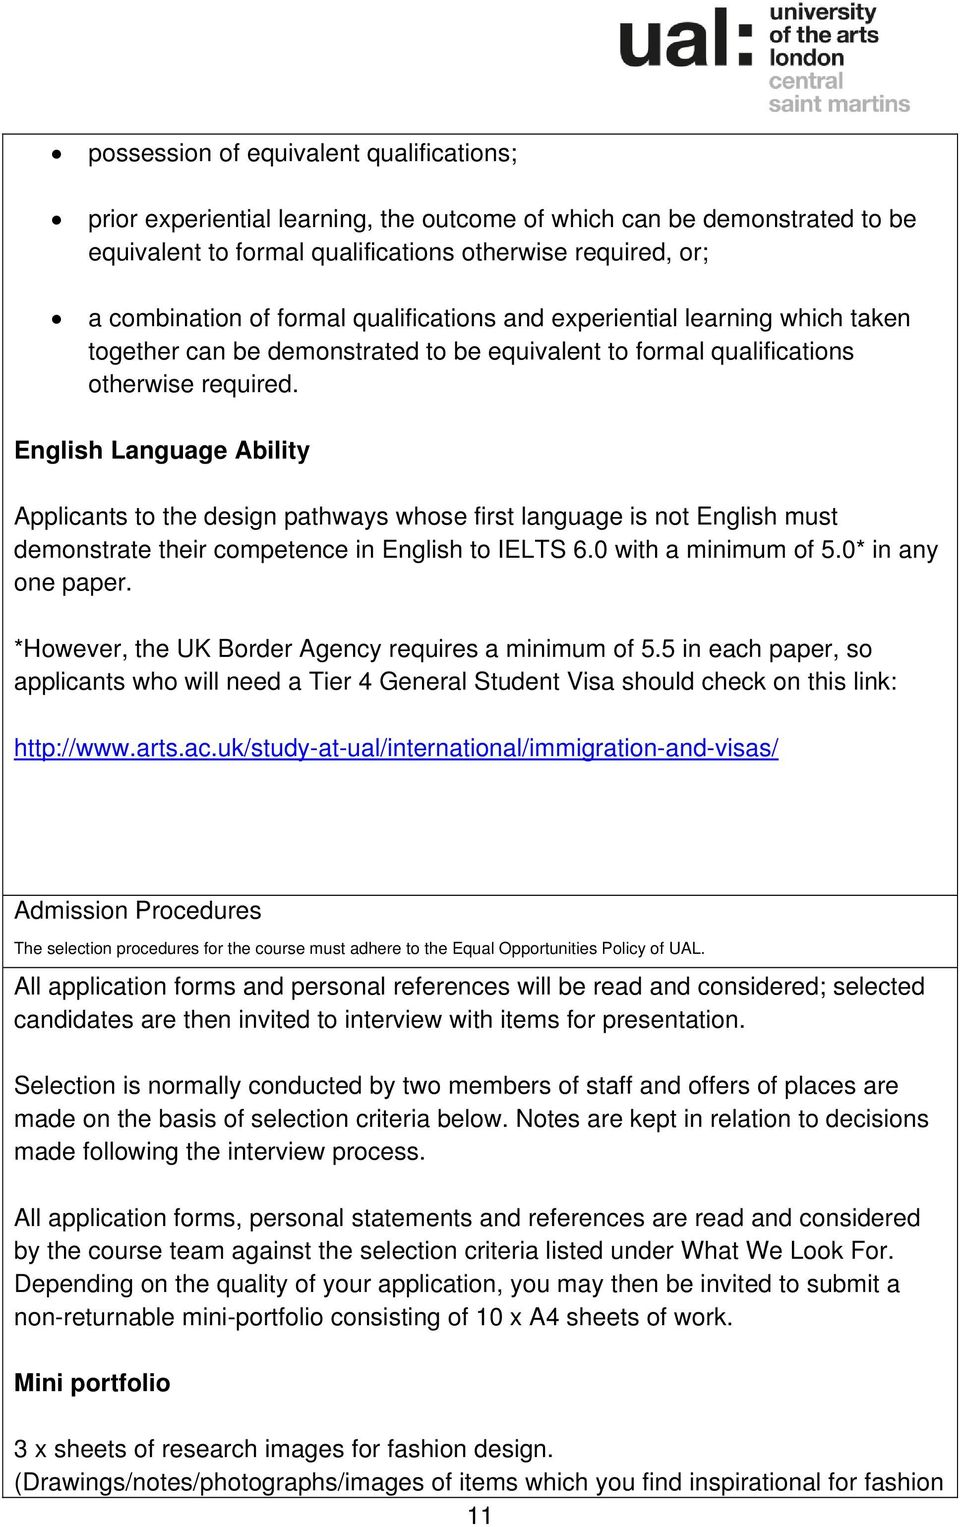 English Language Ability Applicants to the design pathways whose first language is not English must demonstrate their competence in English to IELTS 6.0 with a minimum of 5.0* in any one paper.